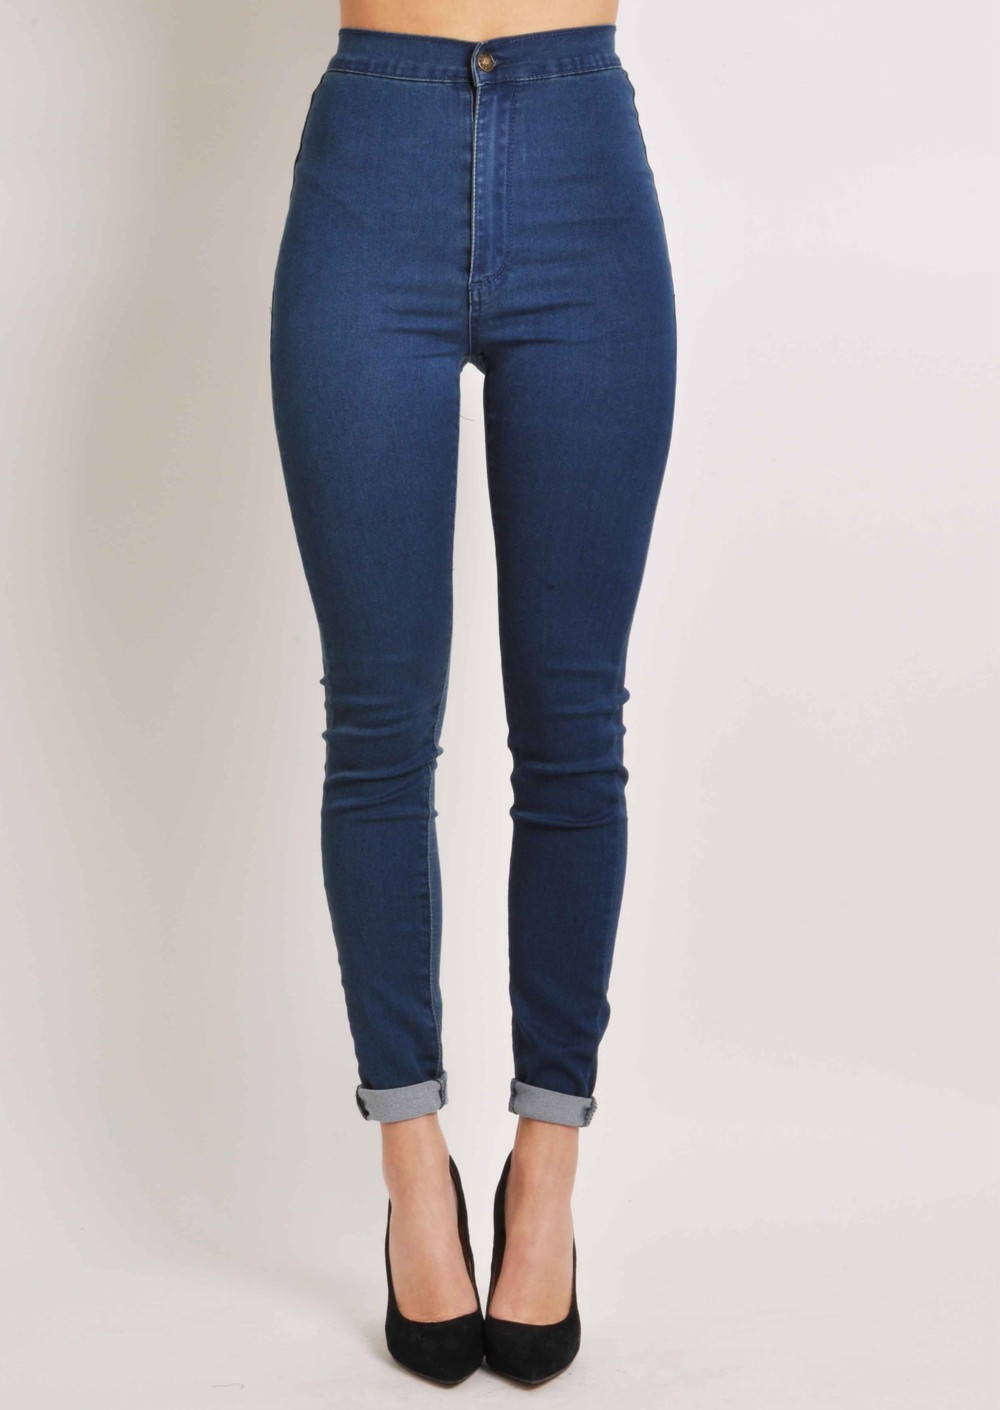 American Apparel High Waist Dark Blue Skinny Jeans - Style #RSAMS Like new, Retails 60$ Really great deal, price is firm. I have two other pairs of these jeans for sell In colors; Acid wash and Dark Grey/Black.